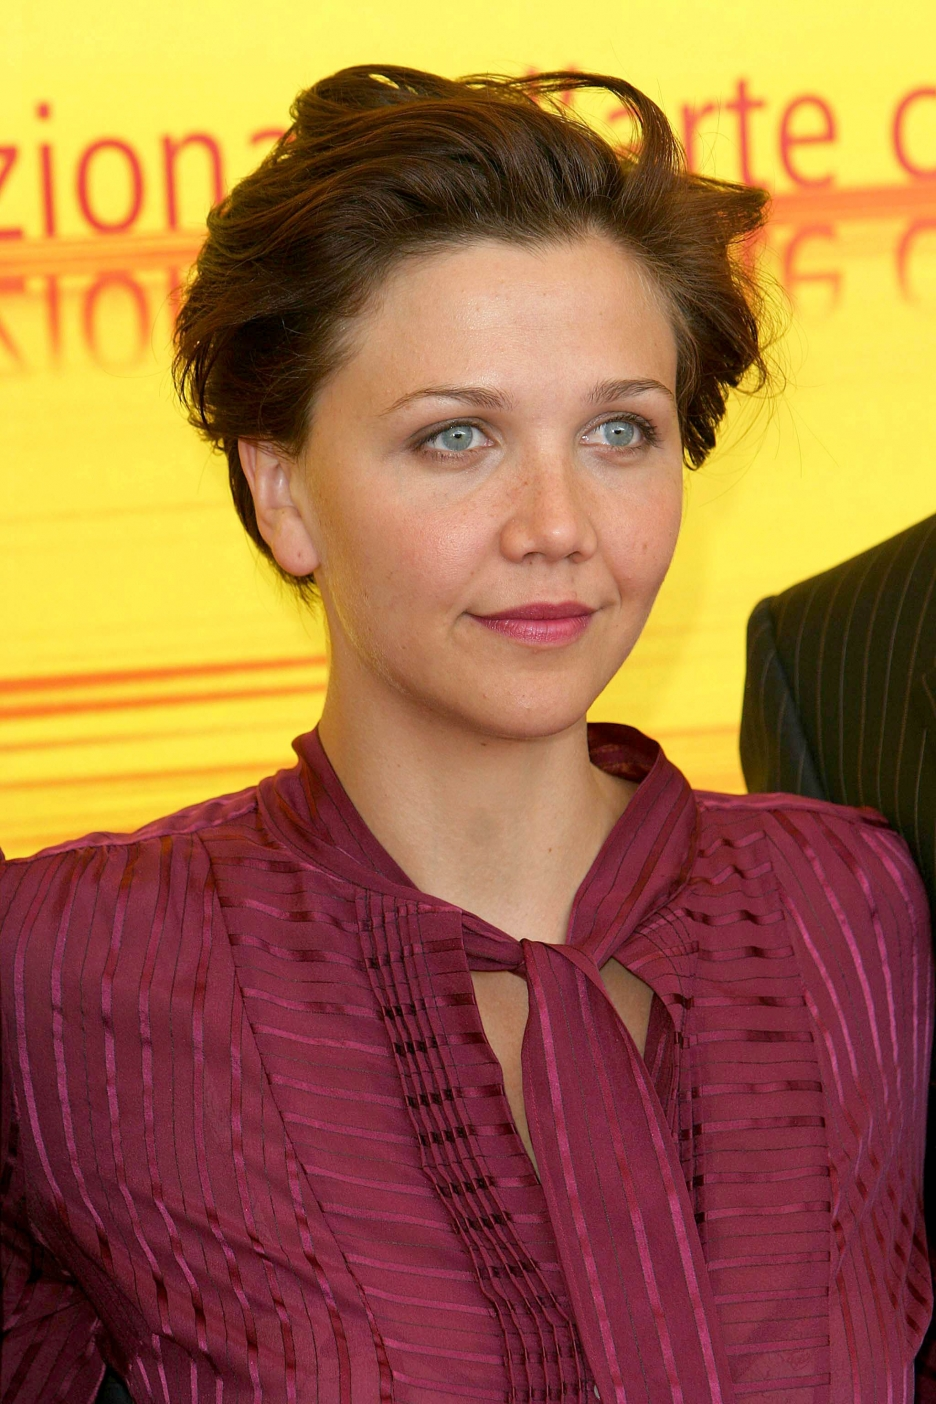 Maggie Gyllenhaal HD Wallpapers High Definition Free